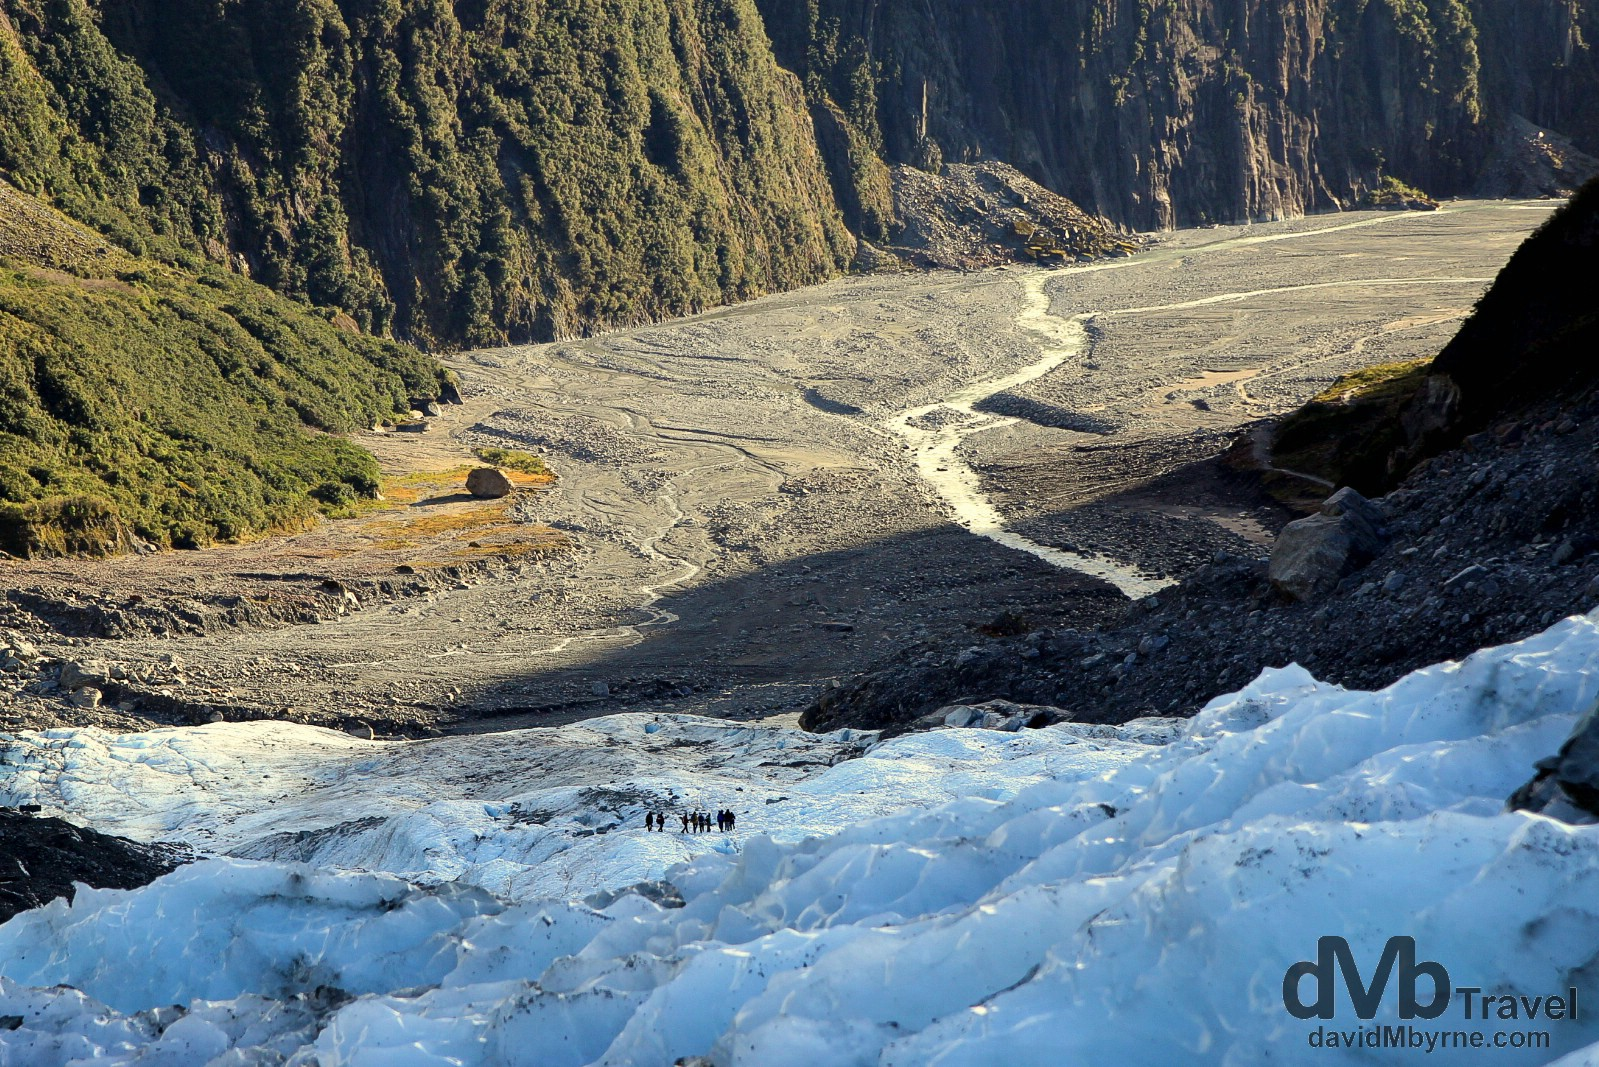 Distant figures descending the Fox Glacier, South Island, New Zealand. May 19th 2012.